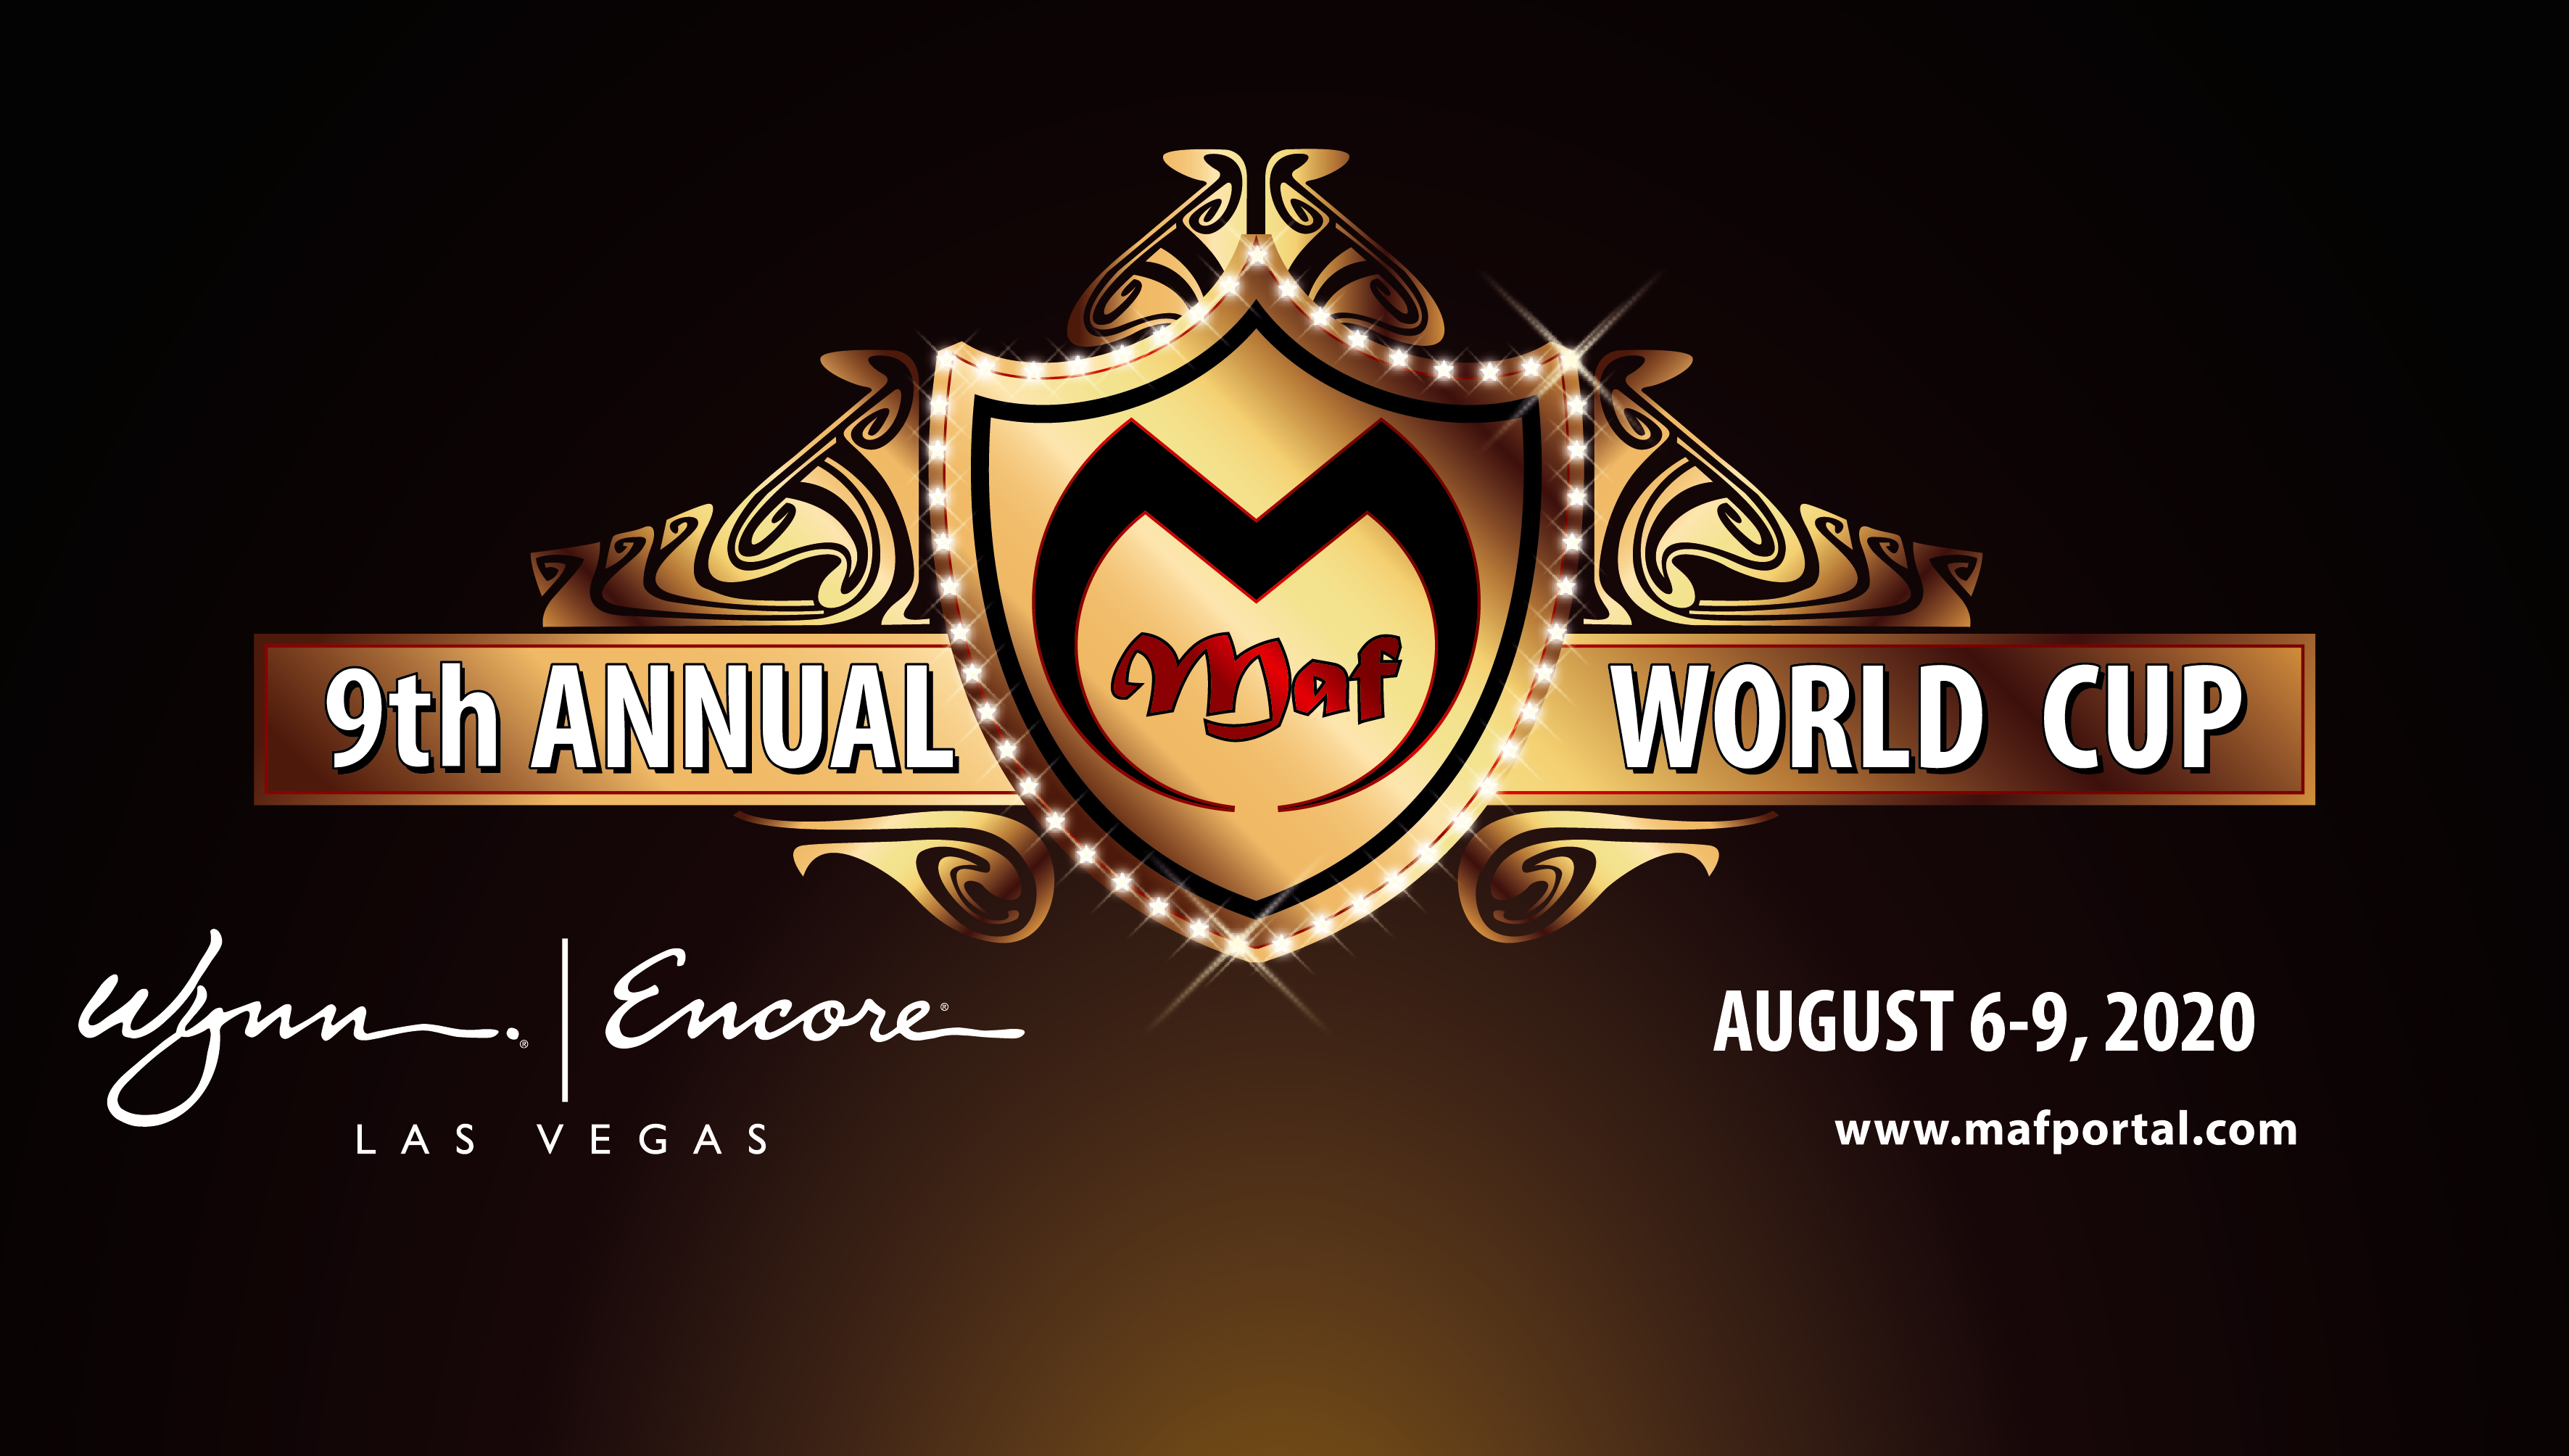 9th Annual MAF World Cup